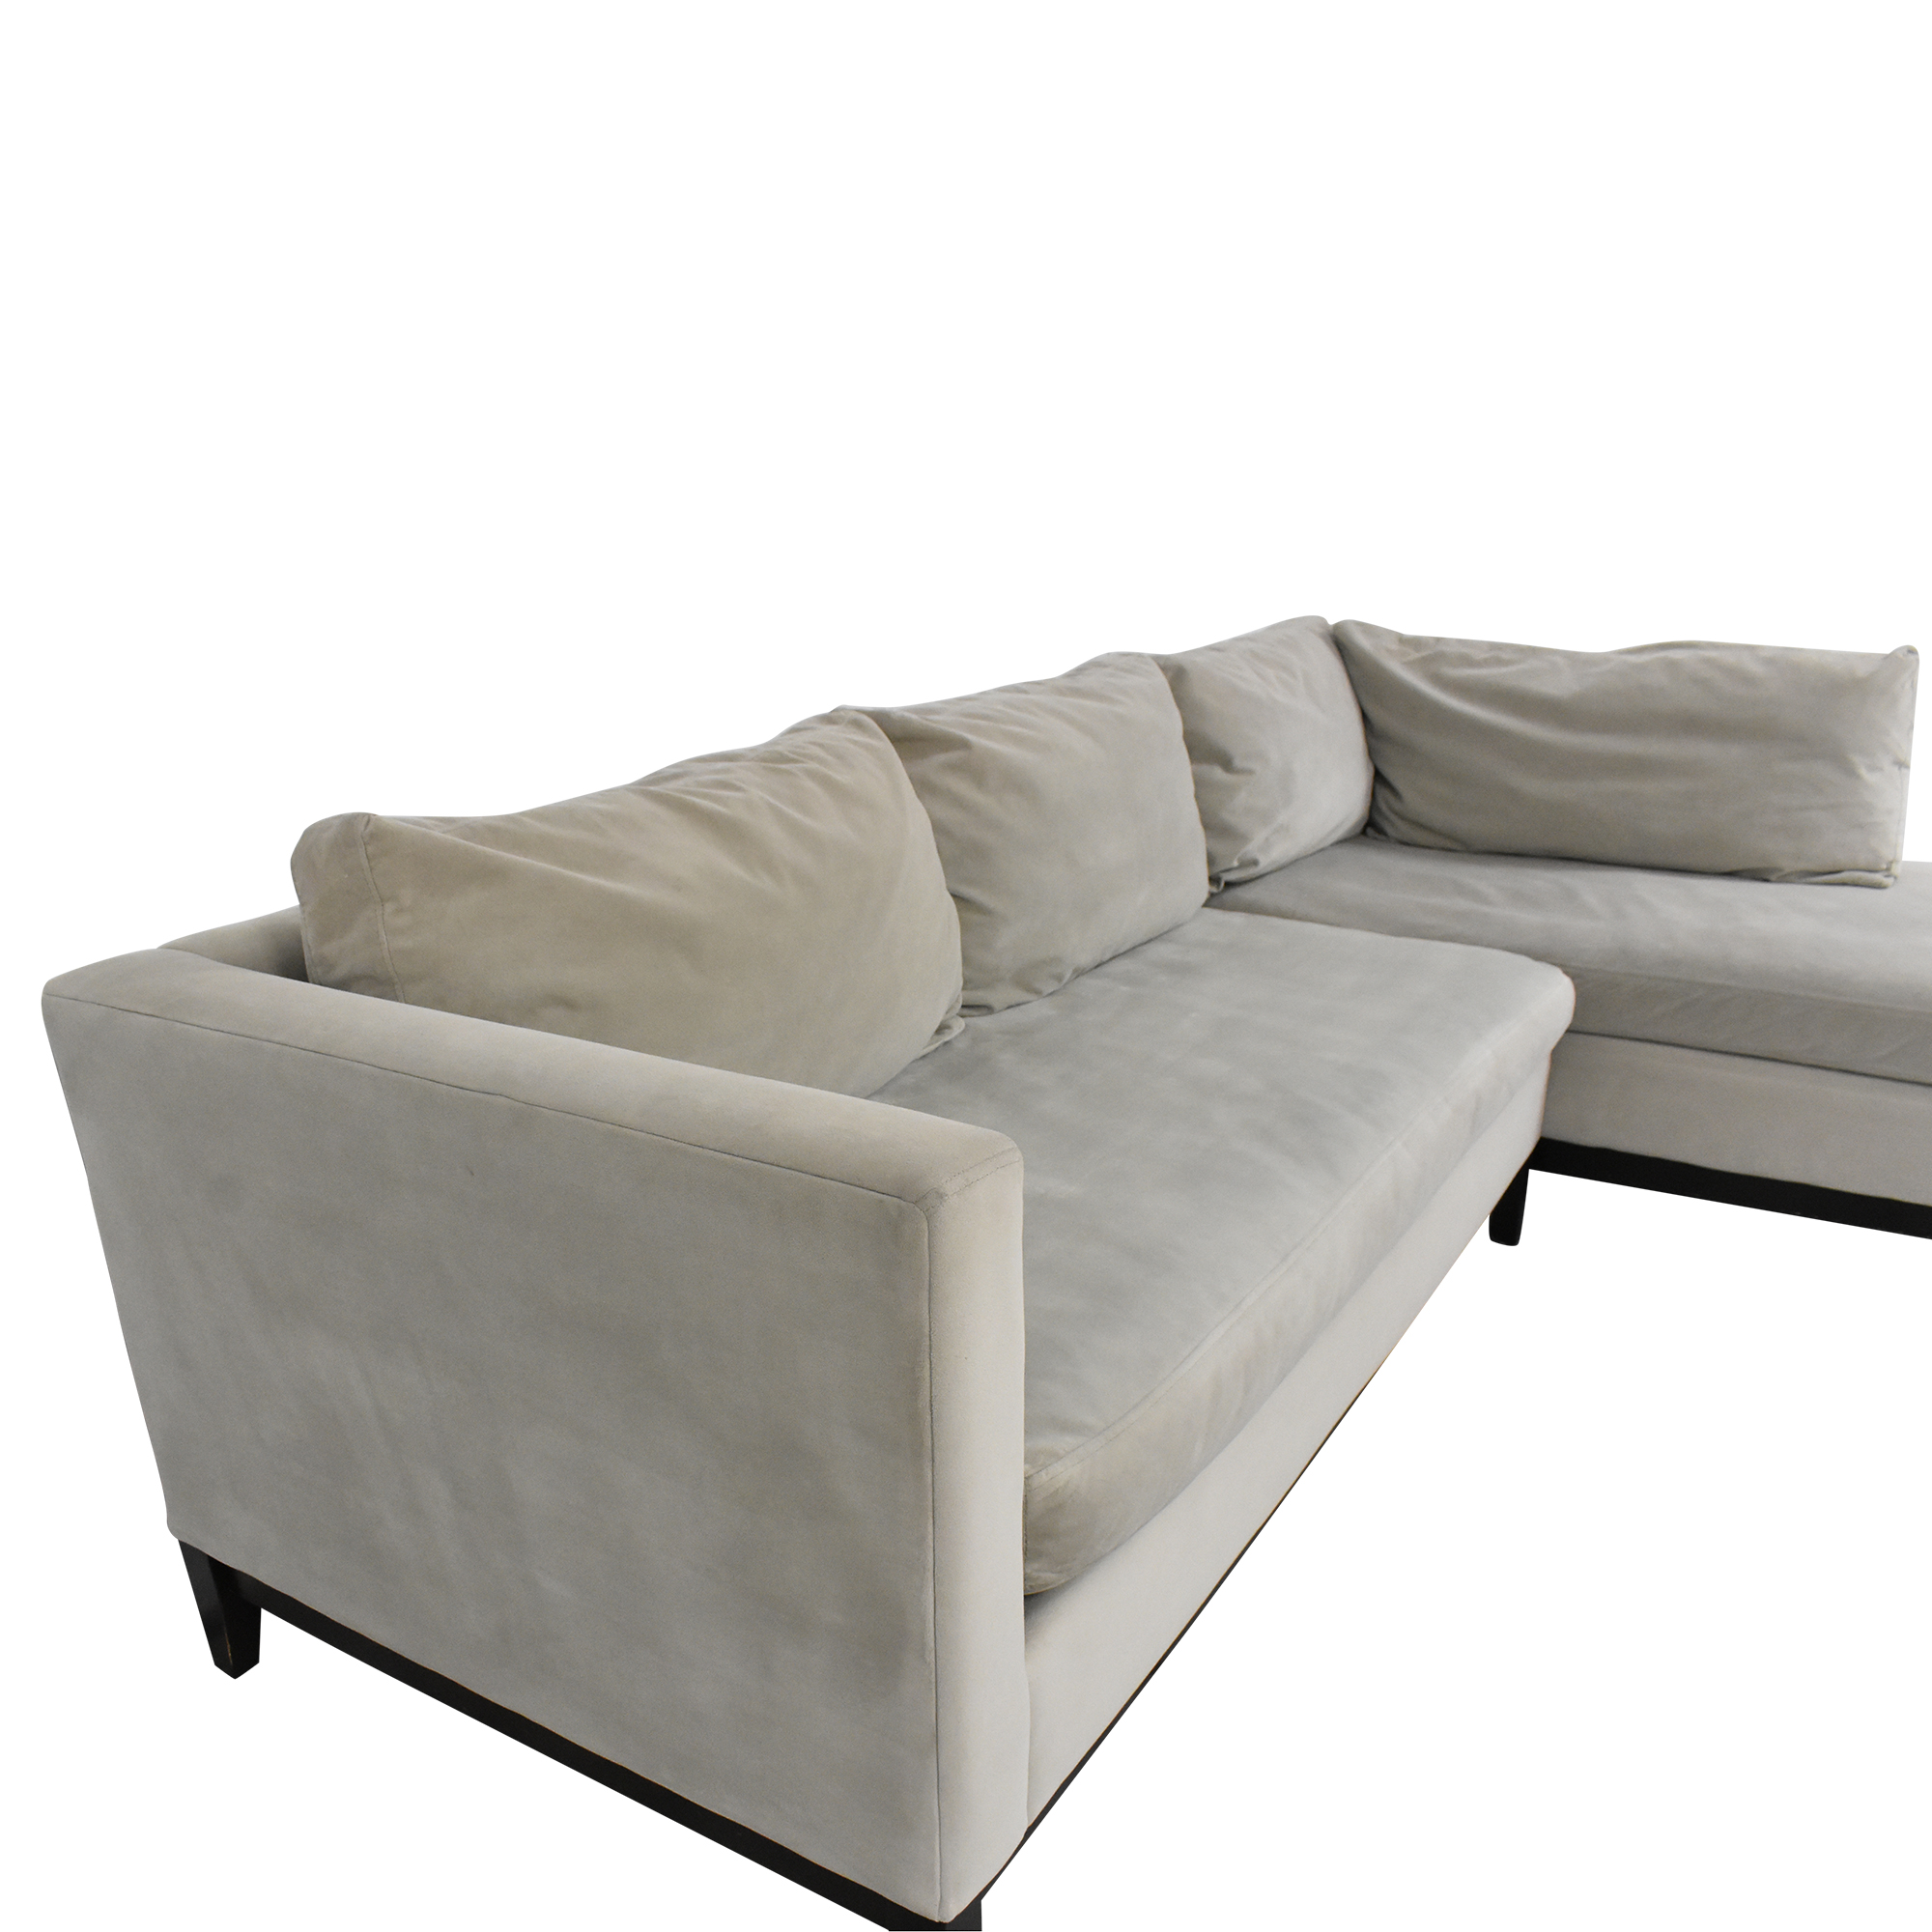 West Elm West Elm Blake Two Piece Chaise Sectional grey